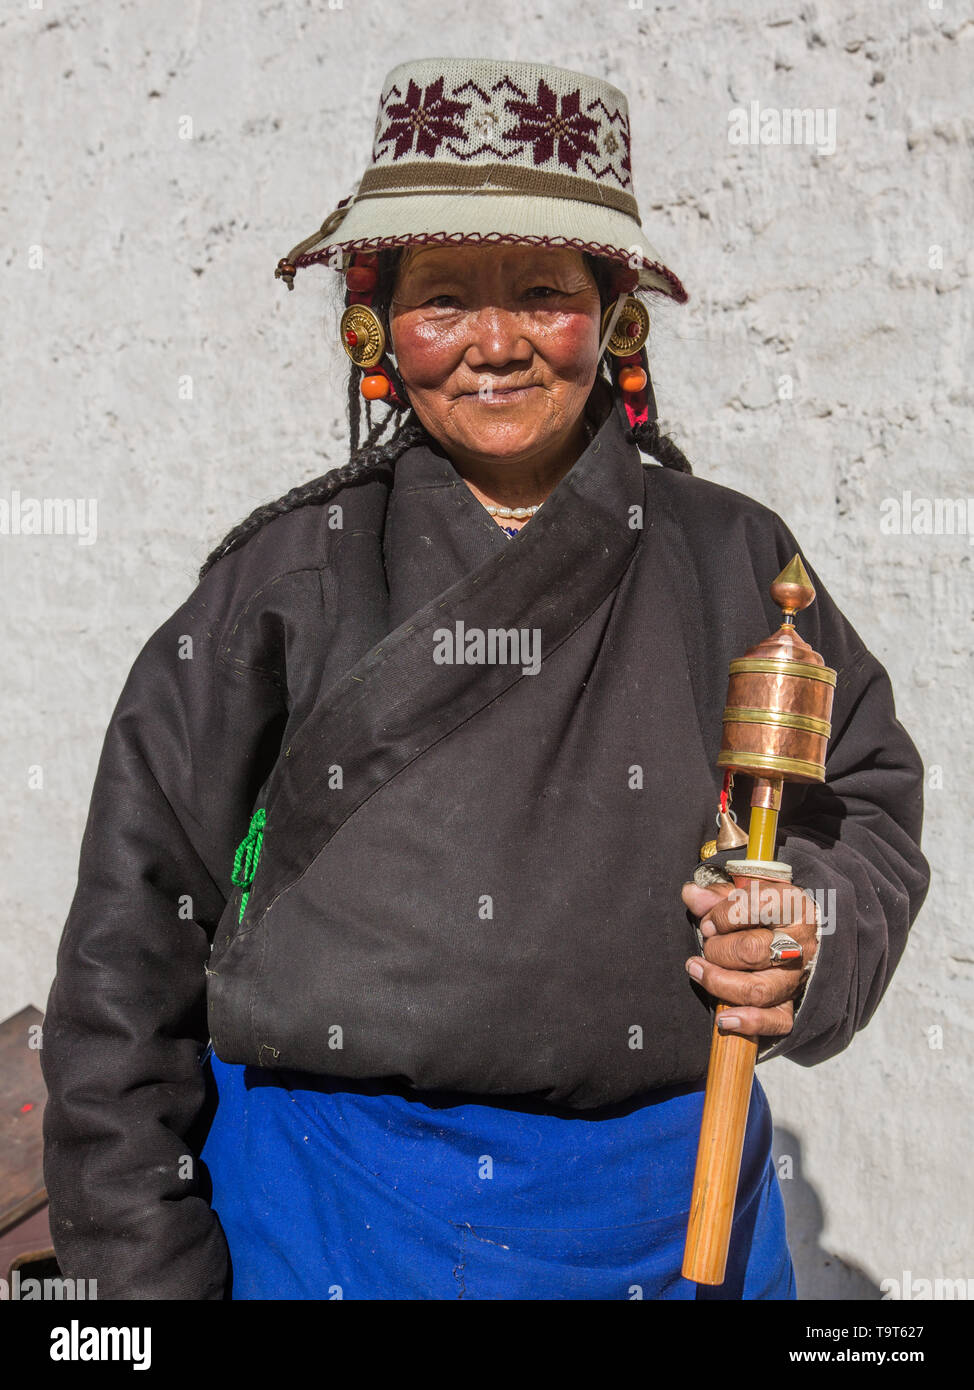 A Khamba Tibetan woman from the Kham region of eastern Tibet on a pilgrimage to visit holy sites in Lhasa, Tibet.  She is wearing red coral jewelry in - Stock Image